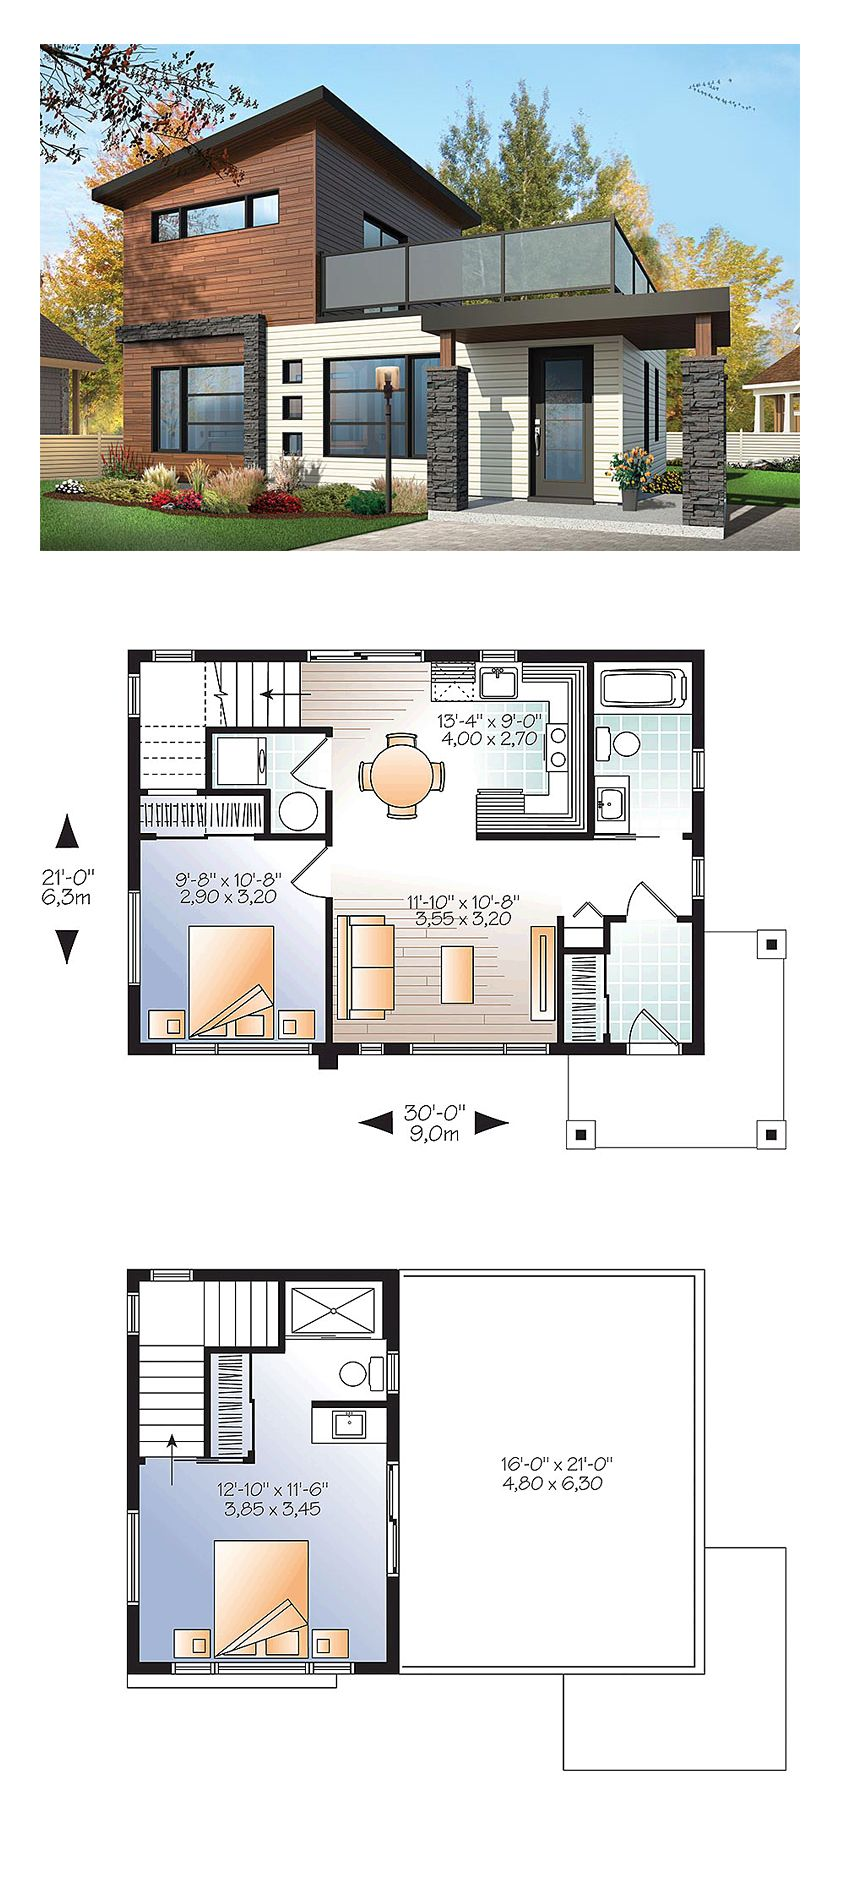 Modern house plan 76461 total living area 924 sq ft for Small house blueprints